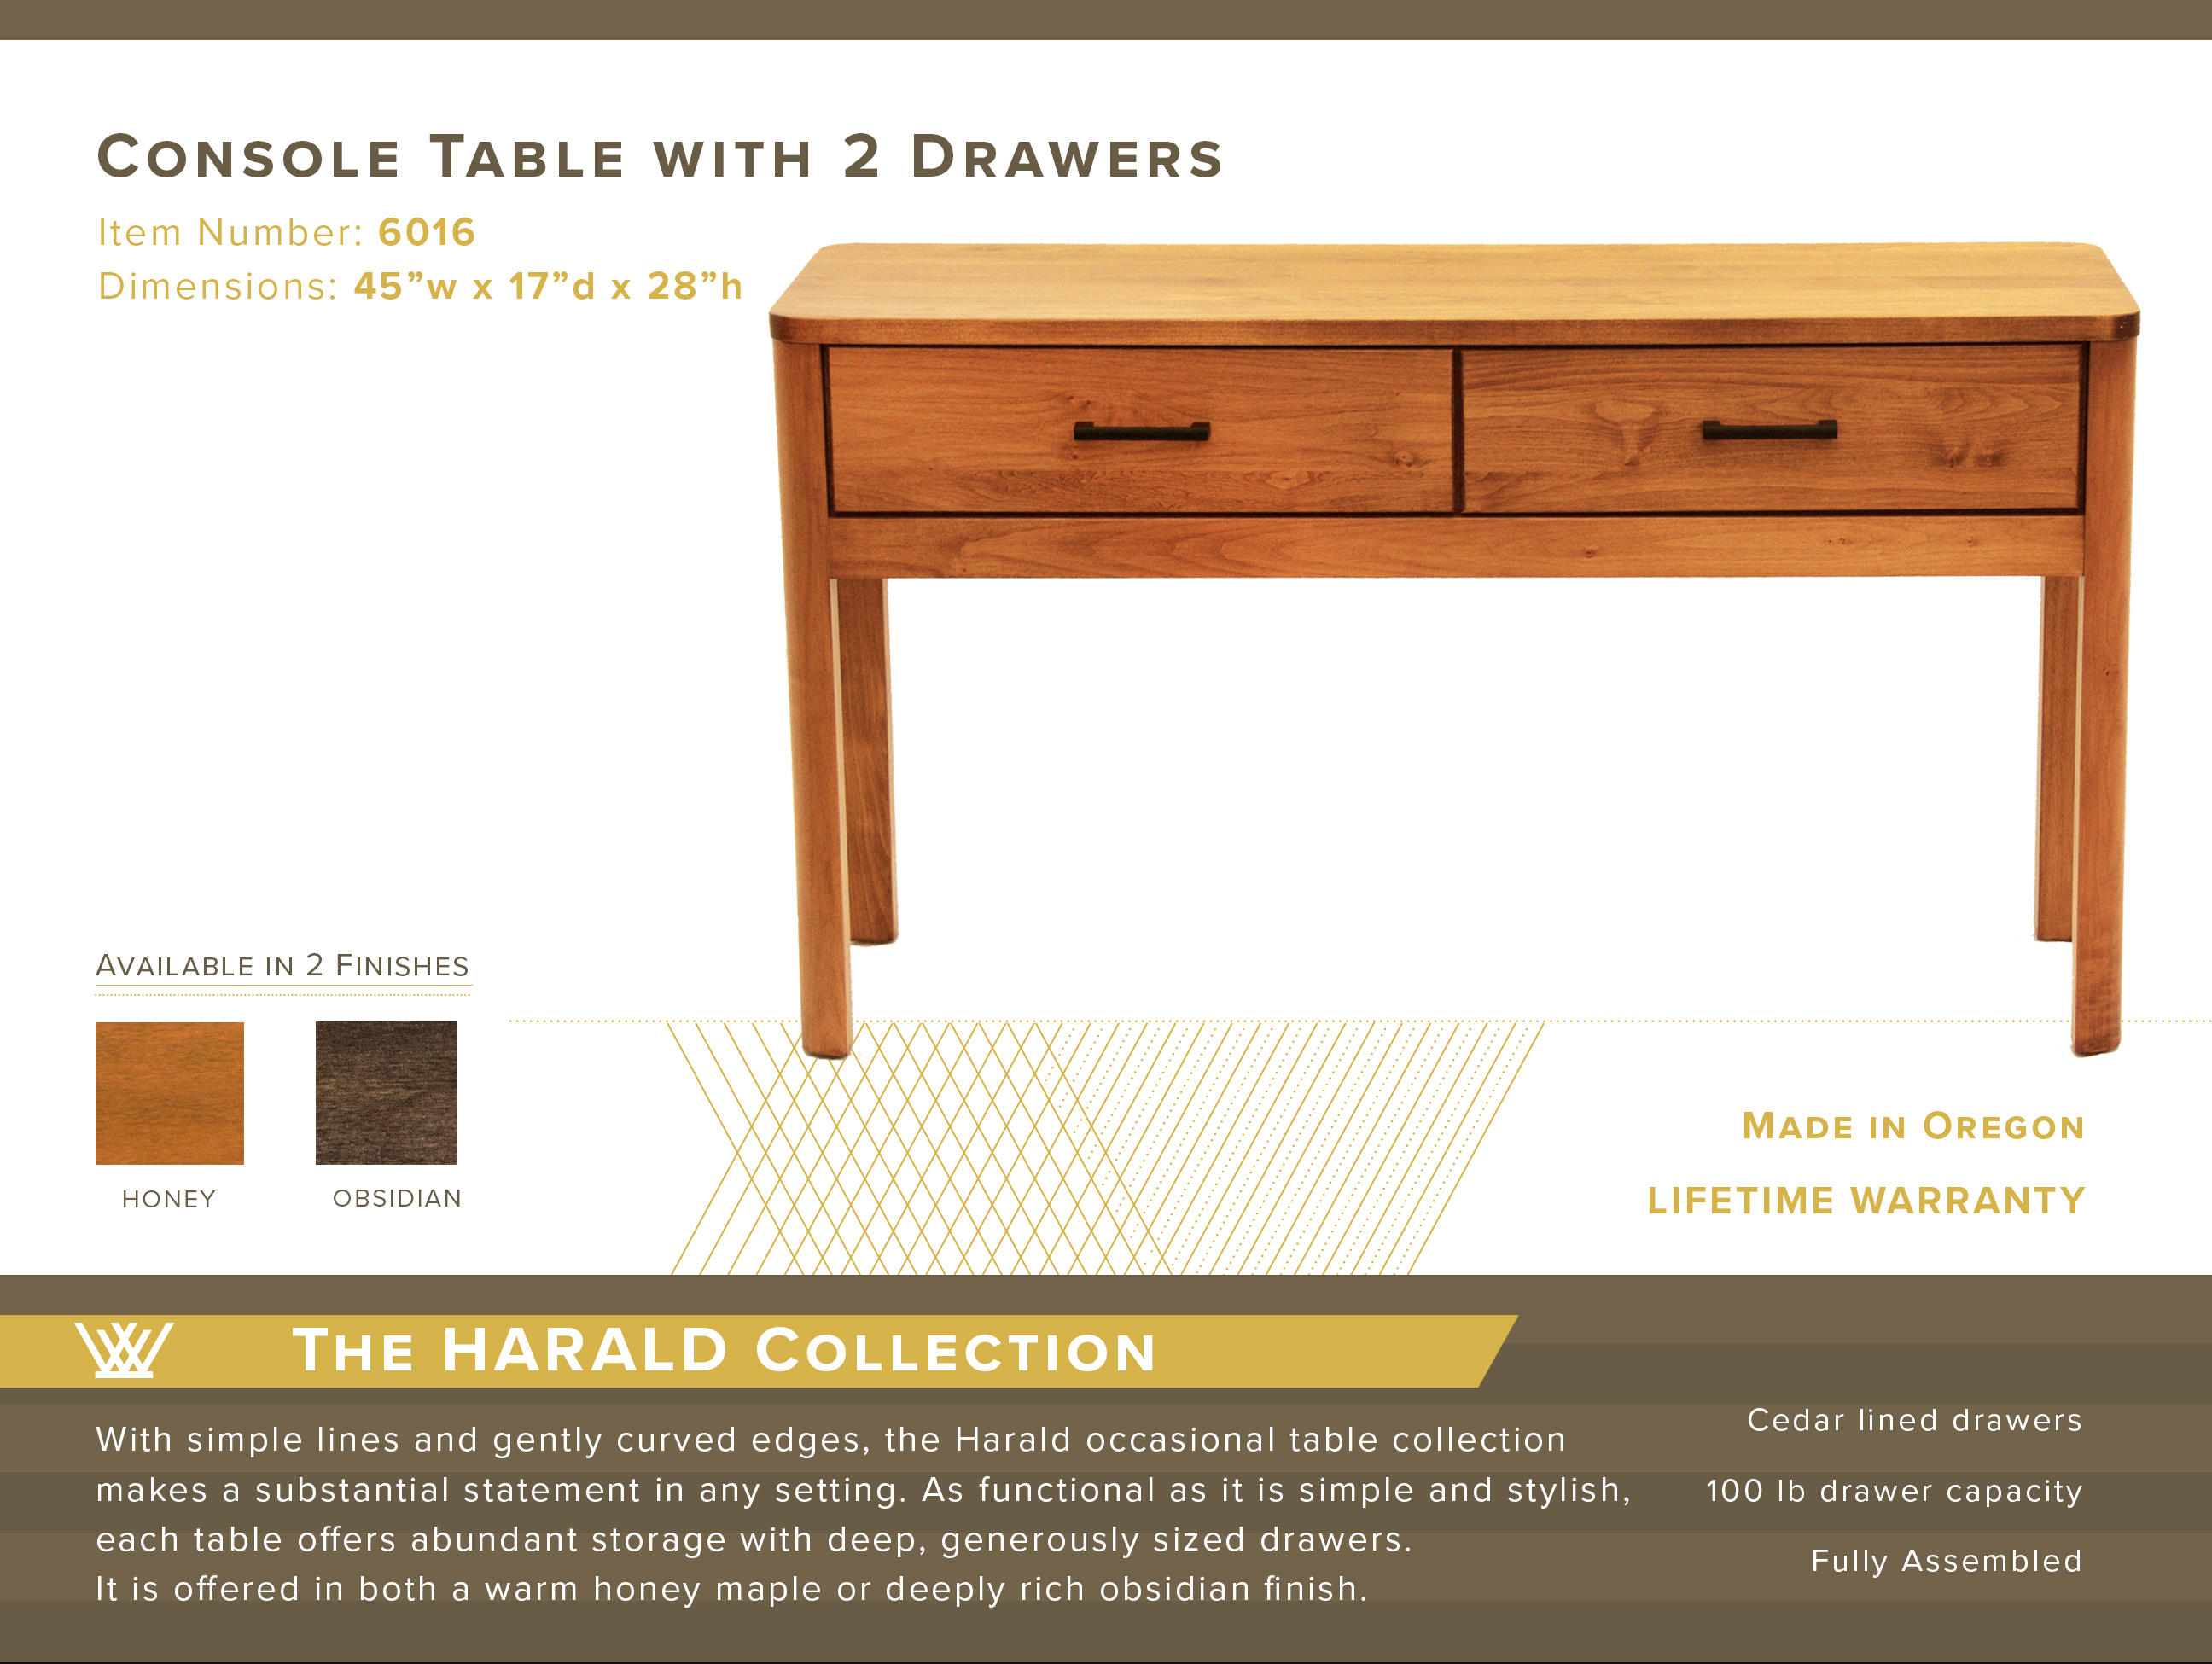 Harald Console Table #6016